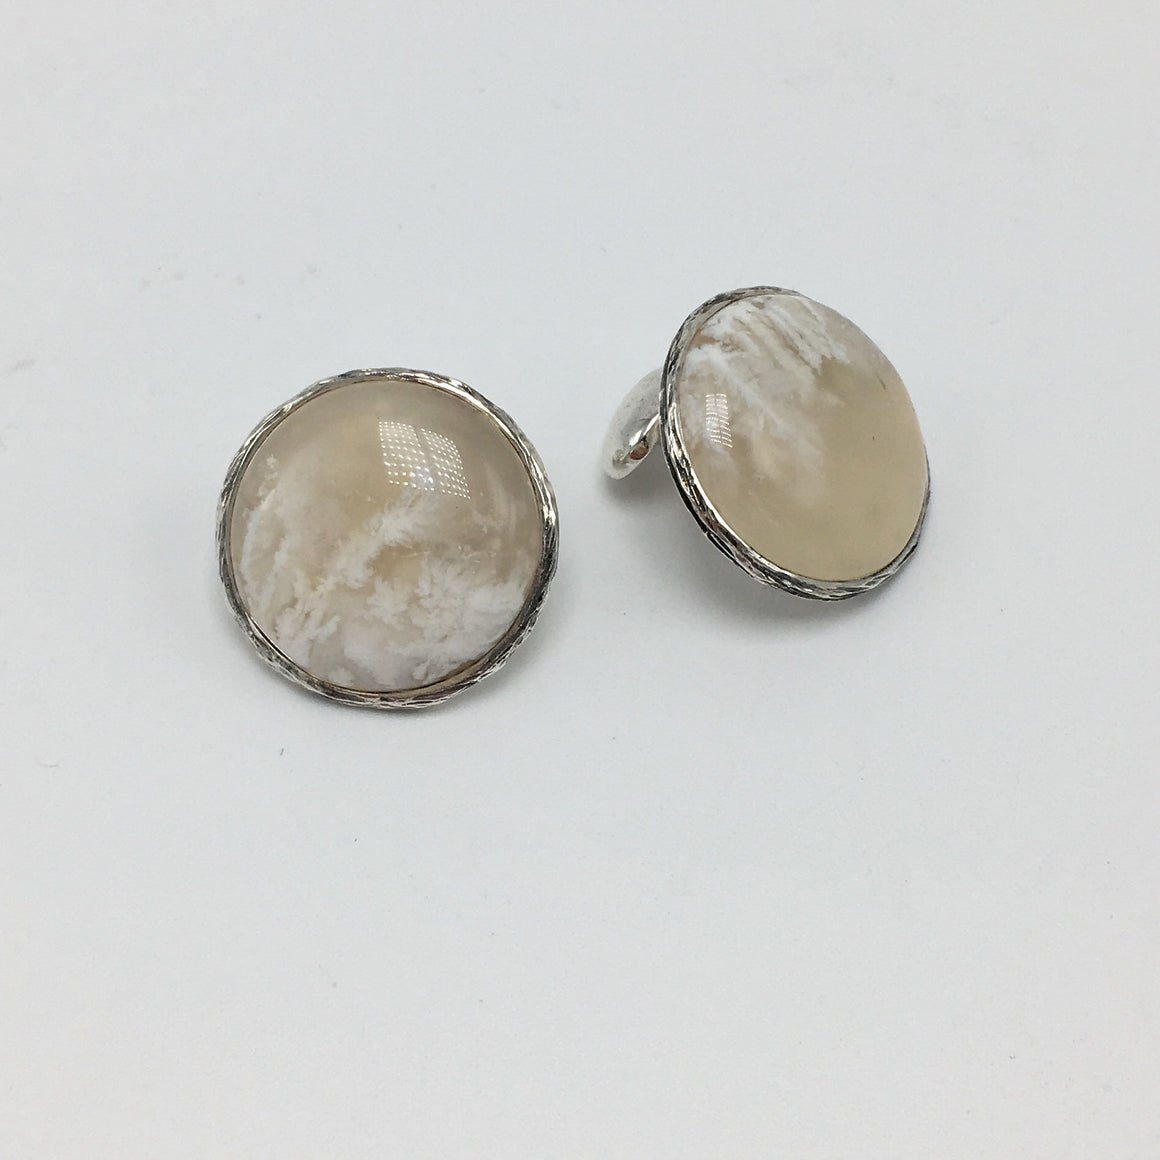 White Plume Agate Cufflinks in Sterling Silver - ORIGINAL RETAIL $465